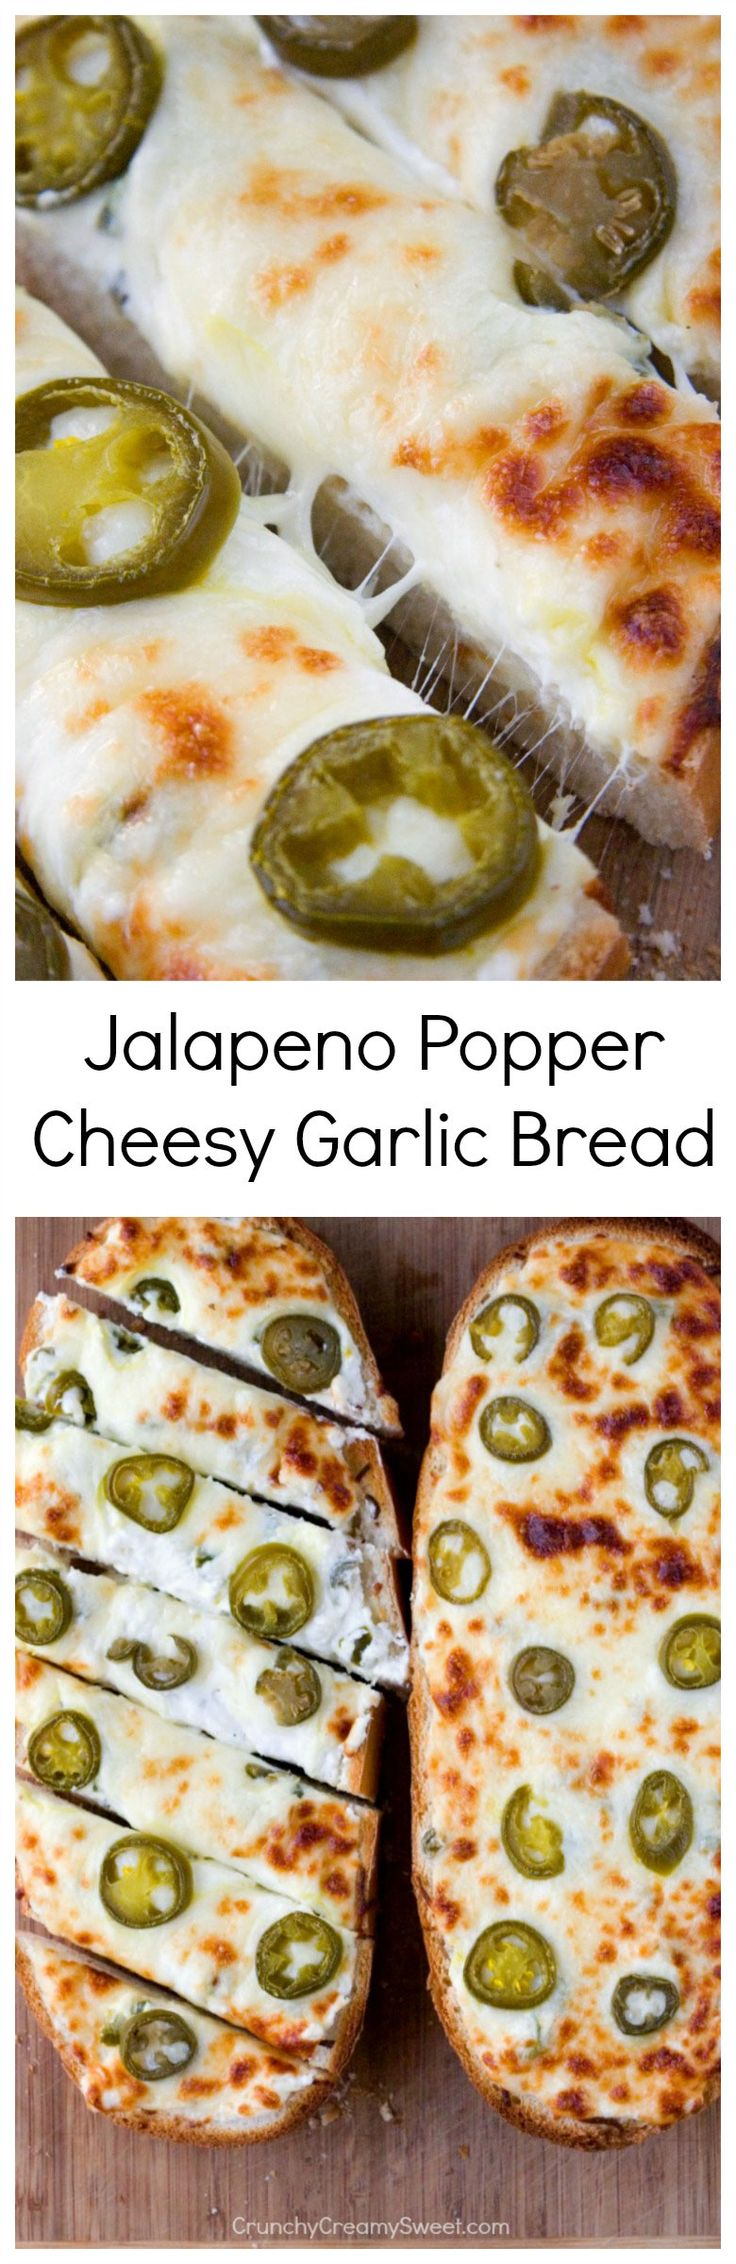 Popper Cheesy Garlic Bread | Cheesy Garlic Bread, Garlic Bread ...